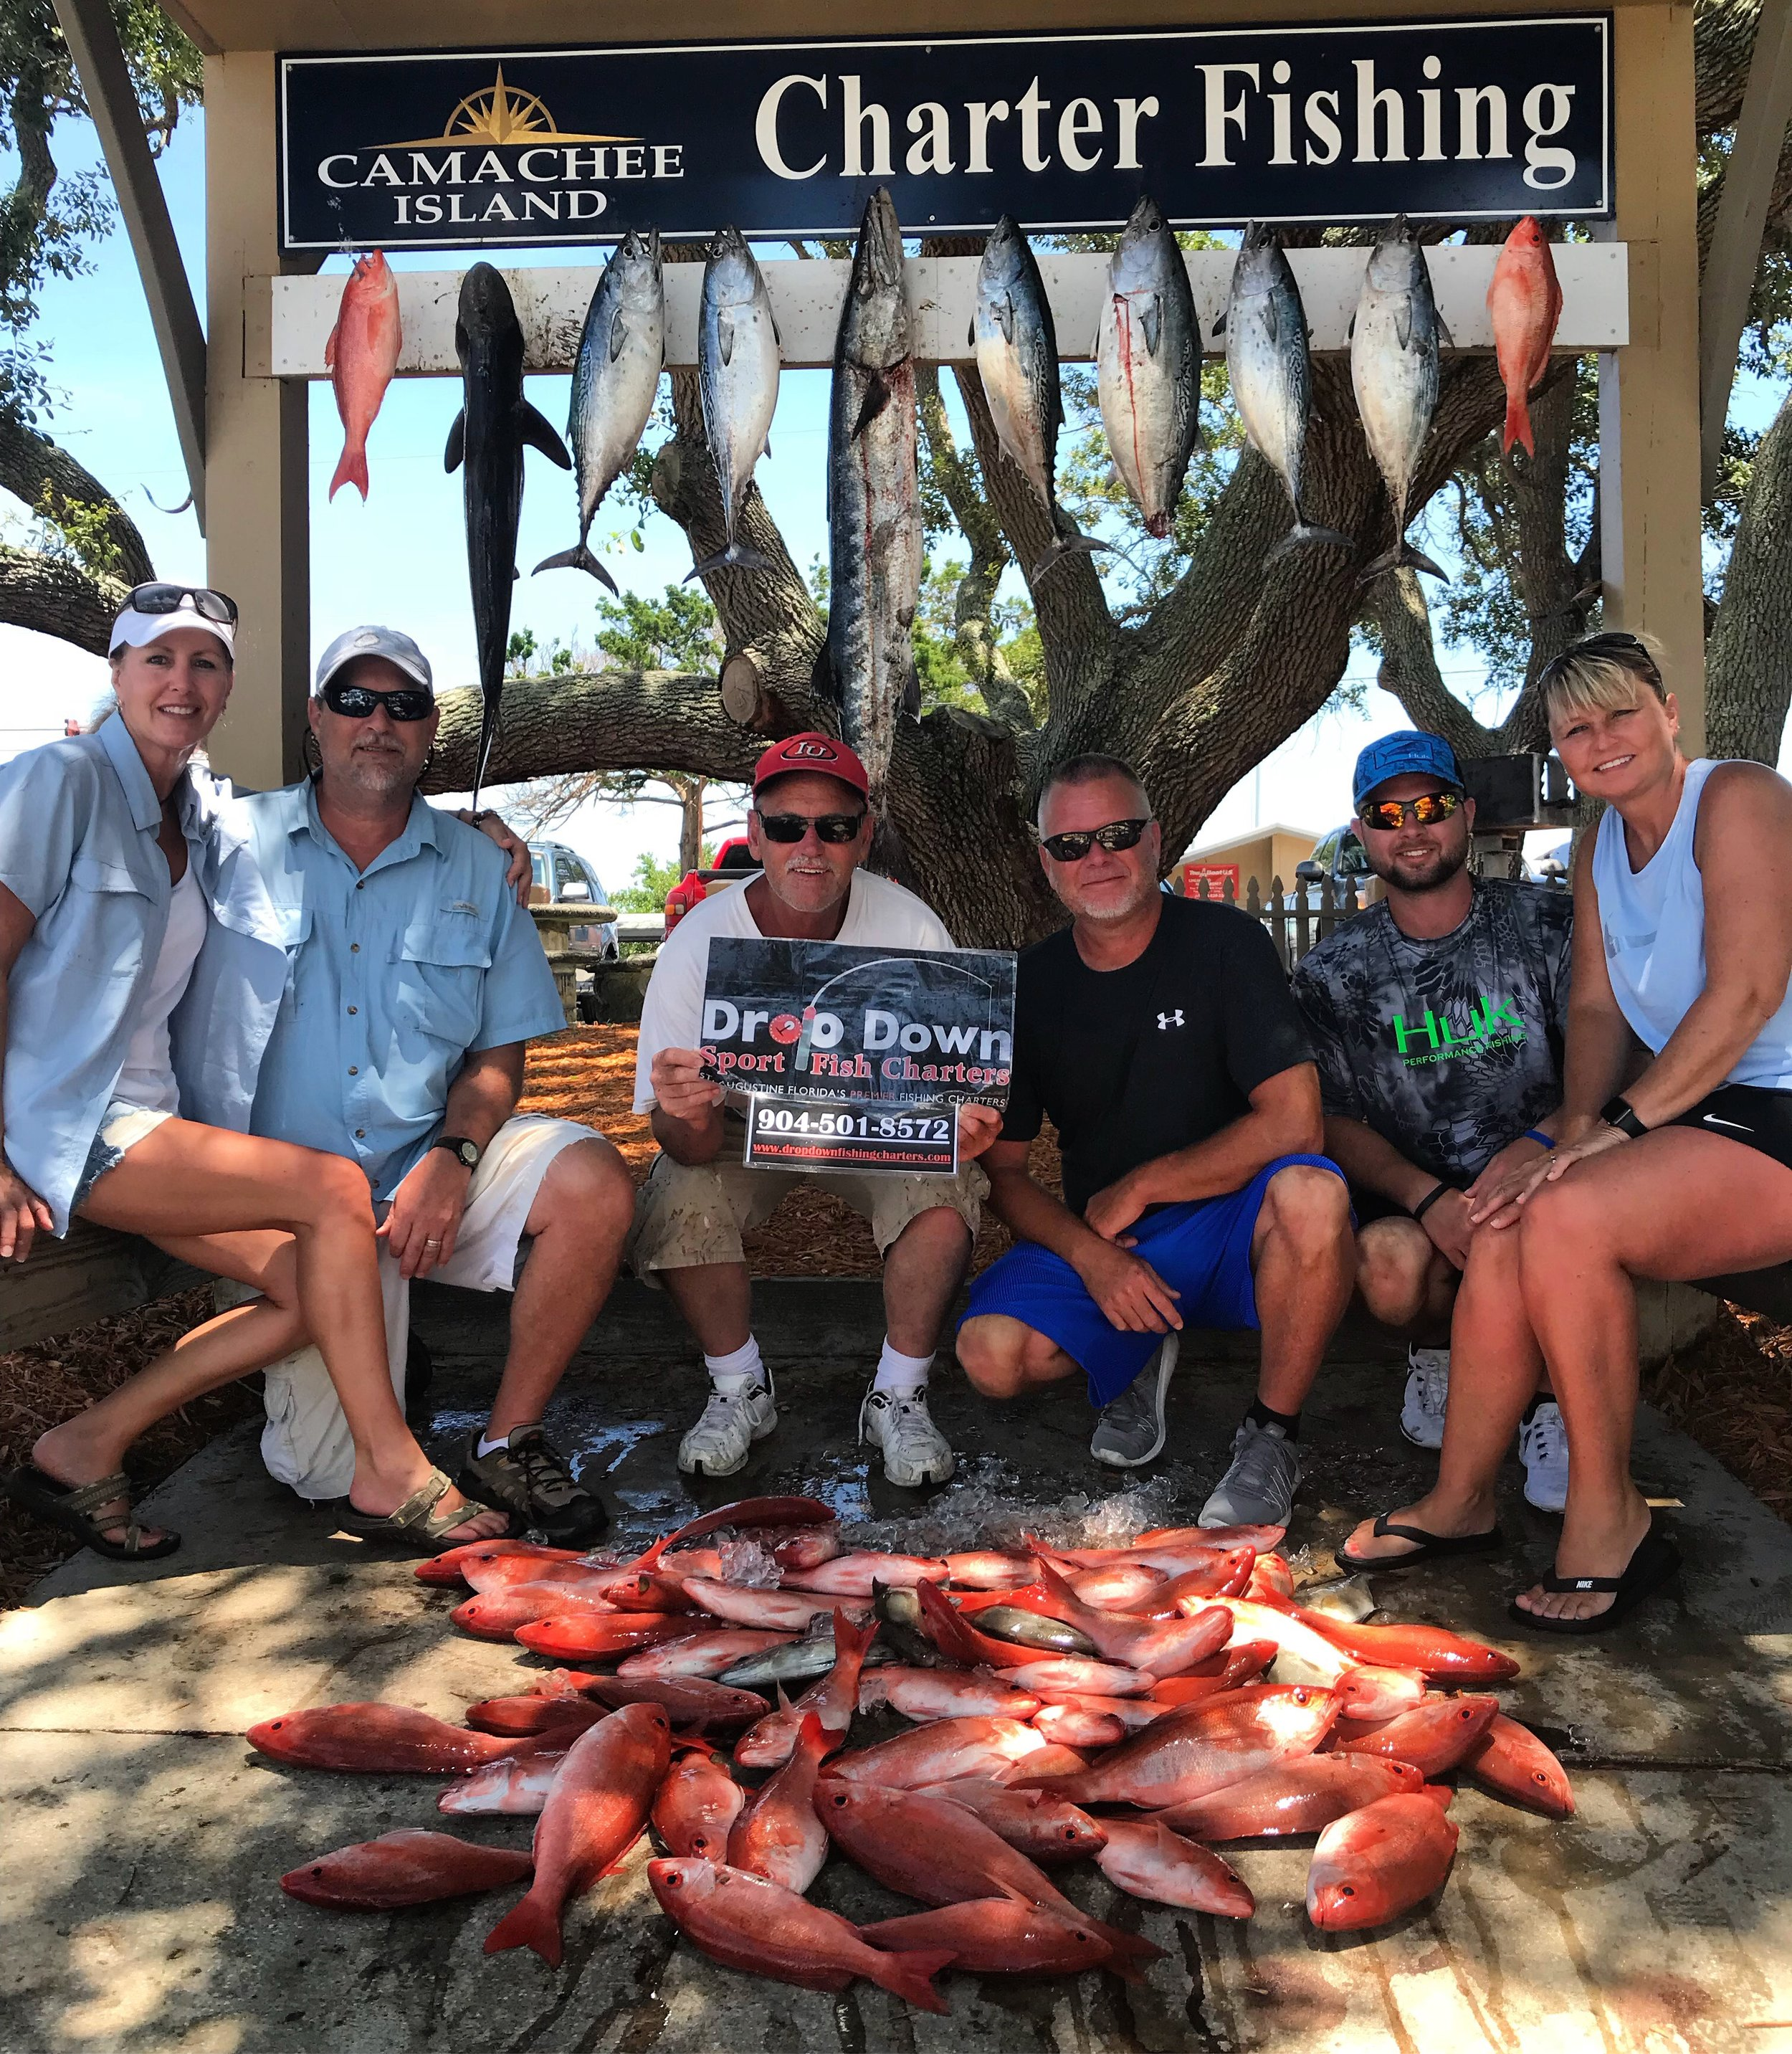 charter-fishing-with-friends-st-augustine.jpeg